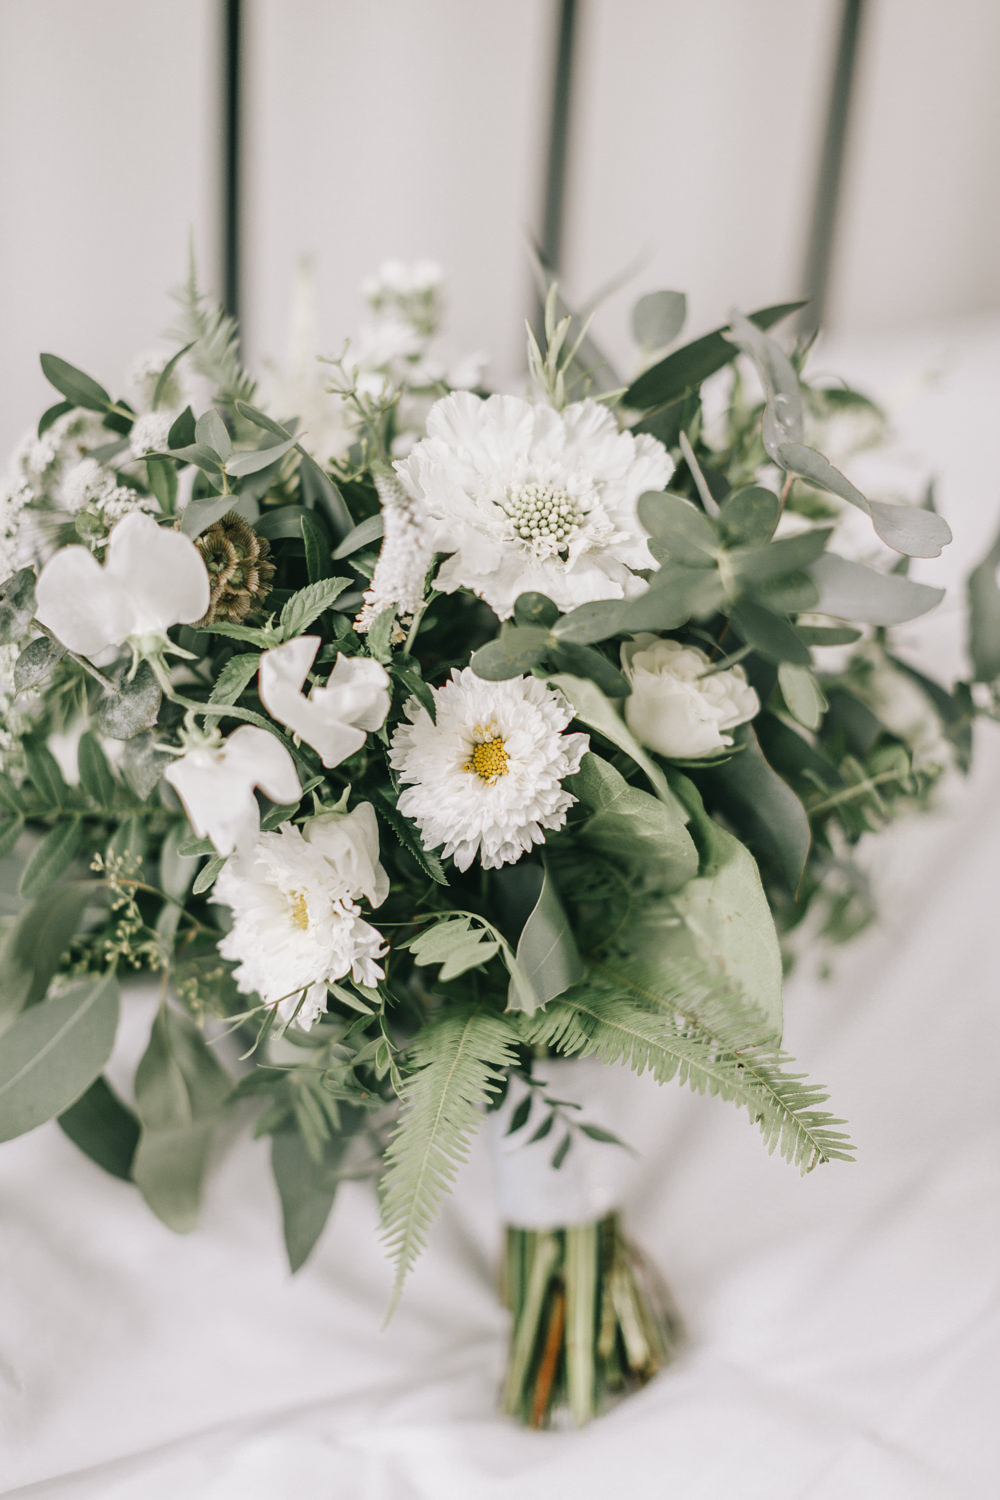 Bouquet Flowers Bride Bridal White Greenery Foliage Sweet Peas Fern Healey Barn Wedding Amy Lou Photography